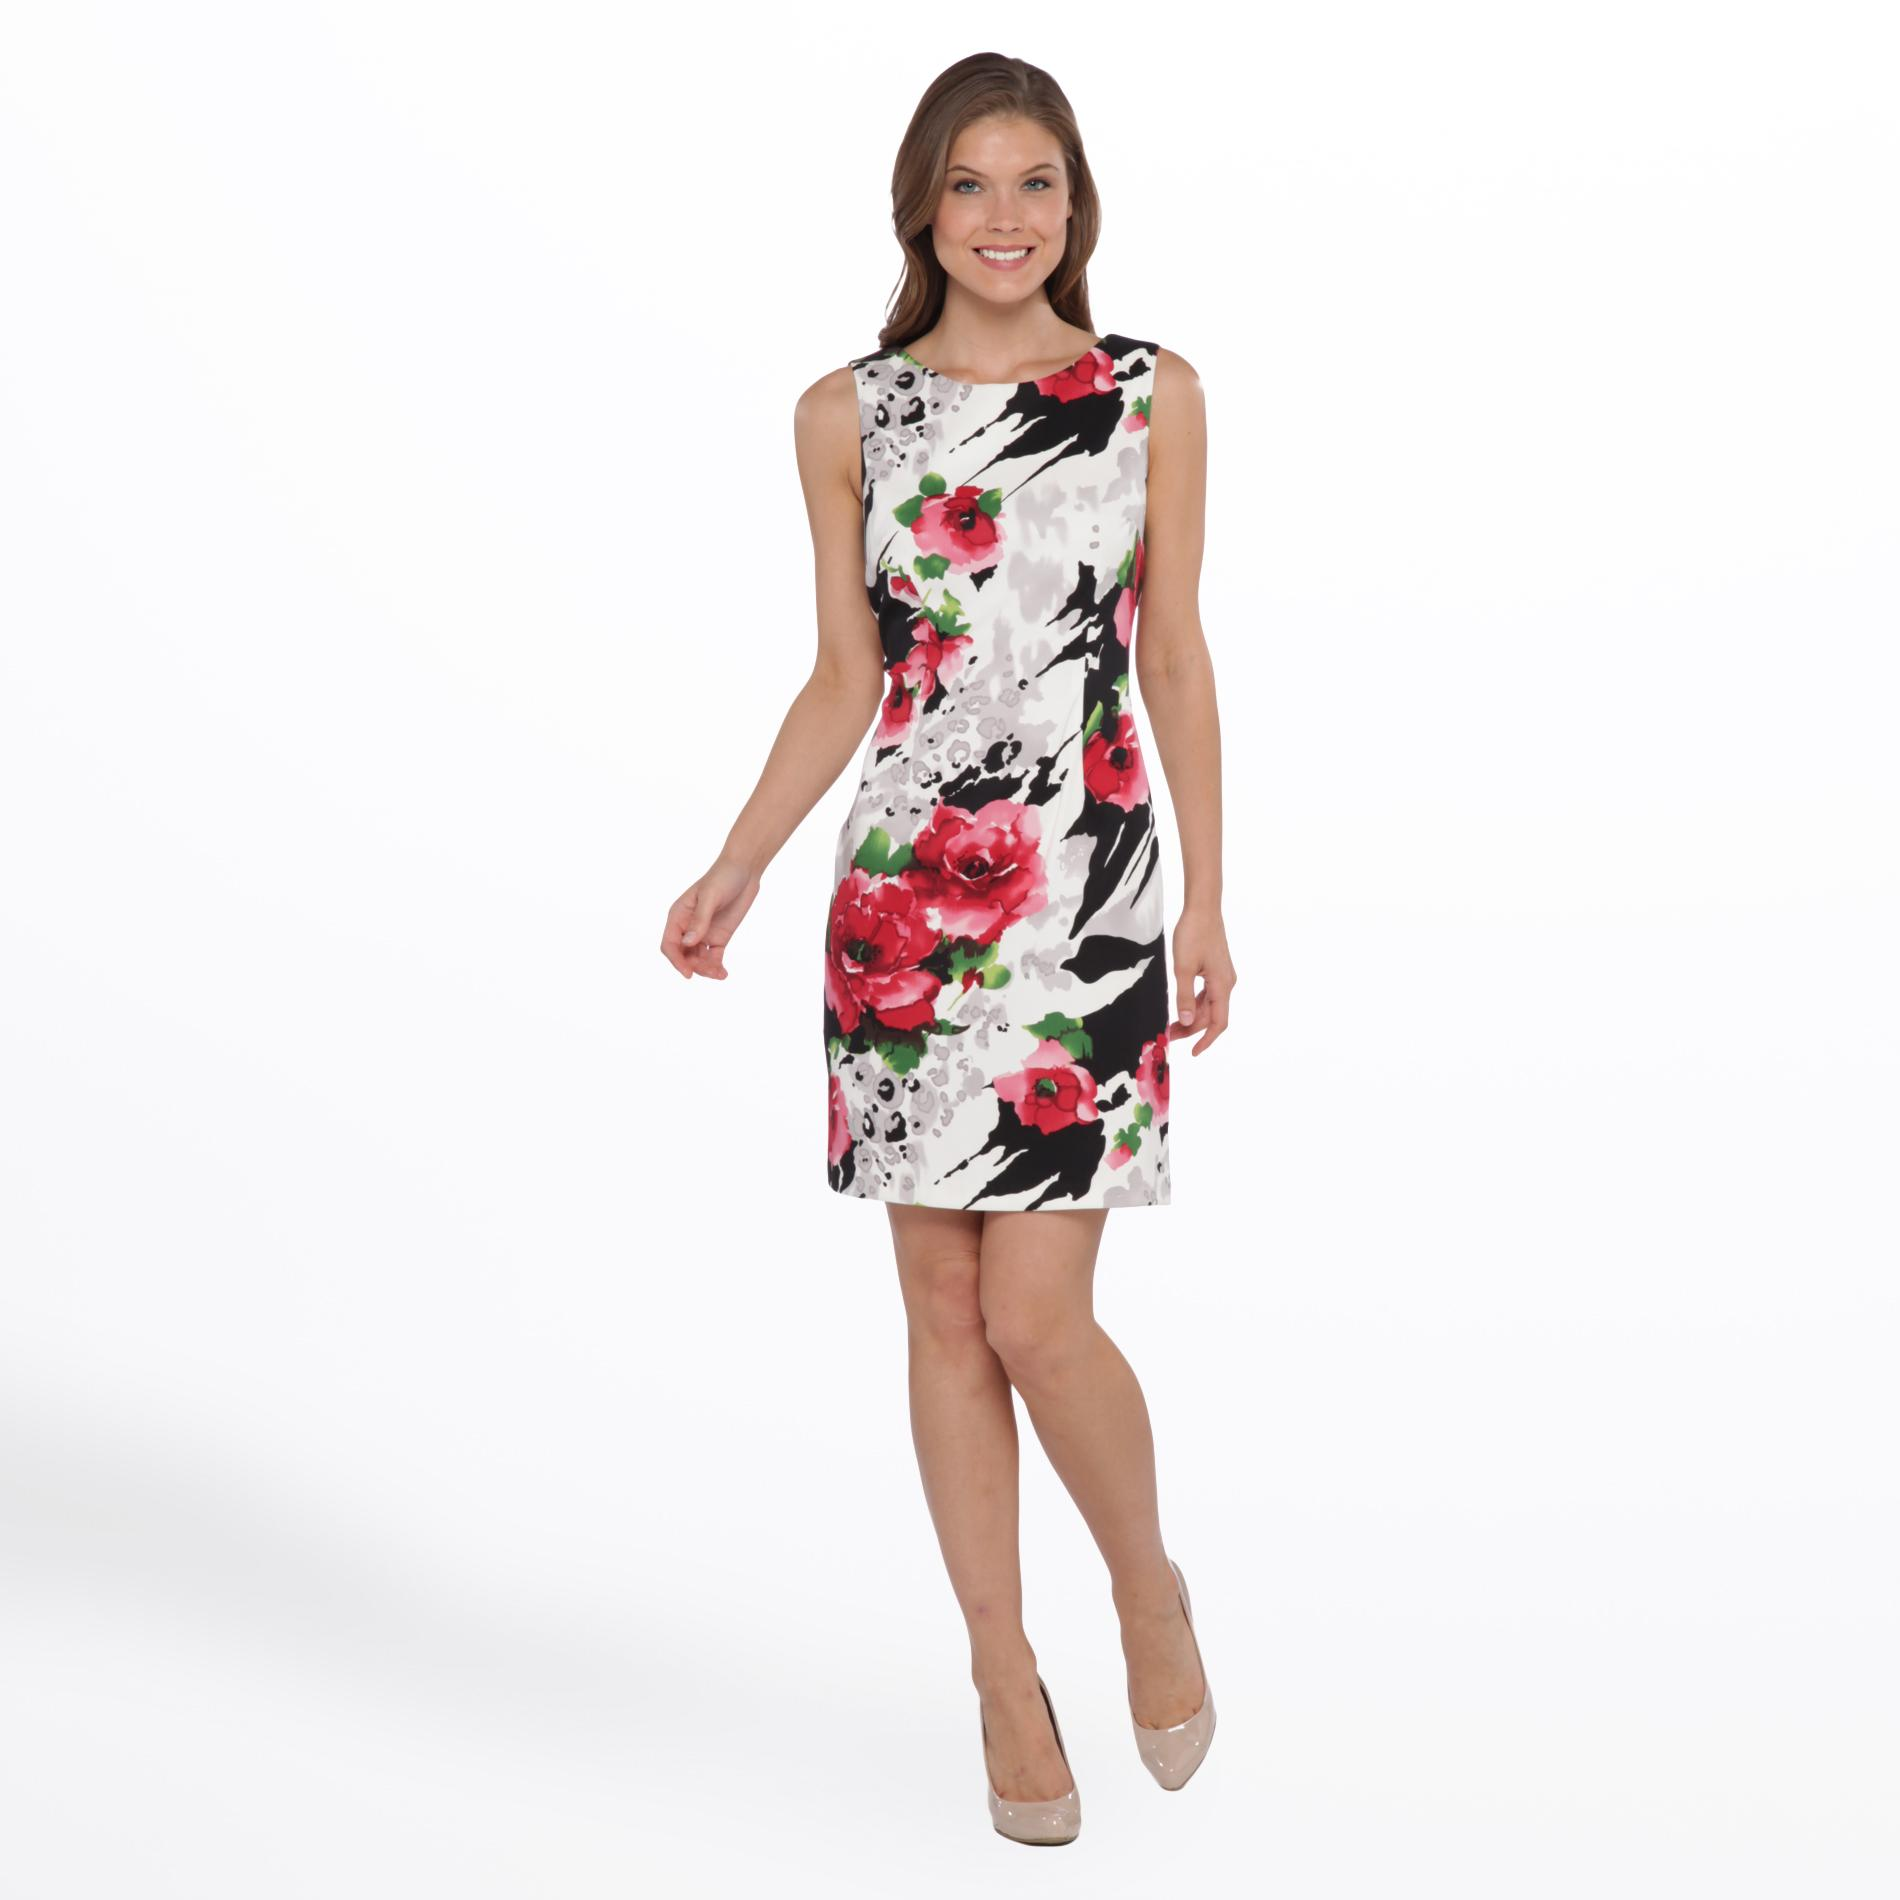 Connected Apparel Women's Party Dress - Floral & Animal Print at Sears.com